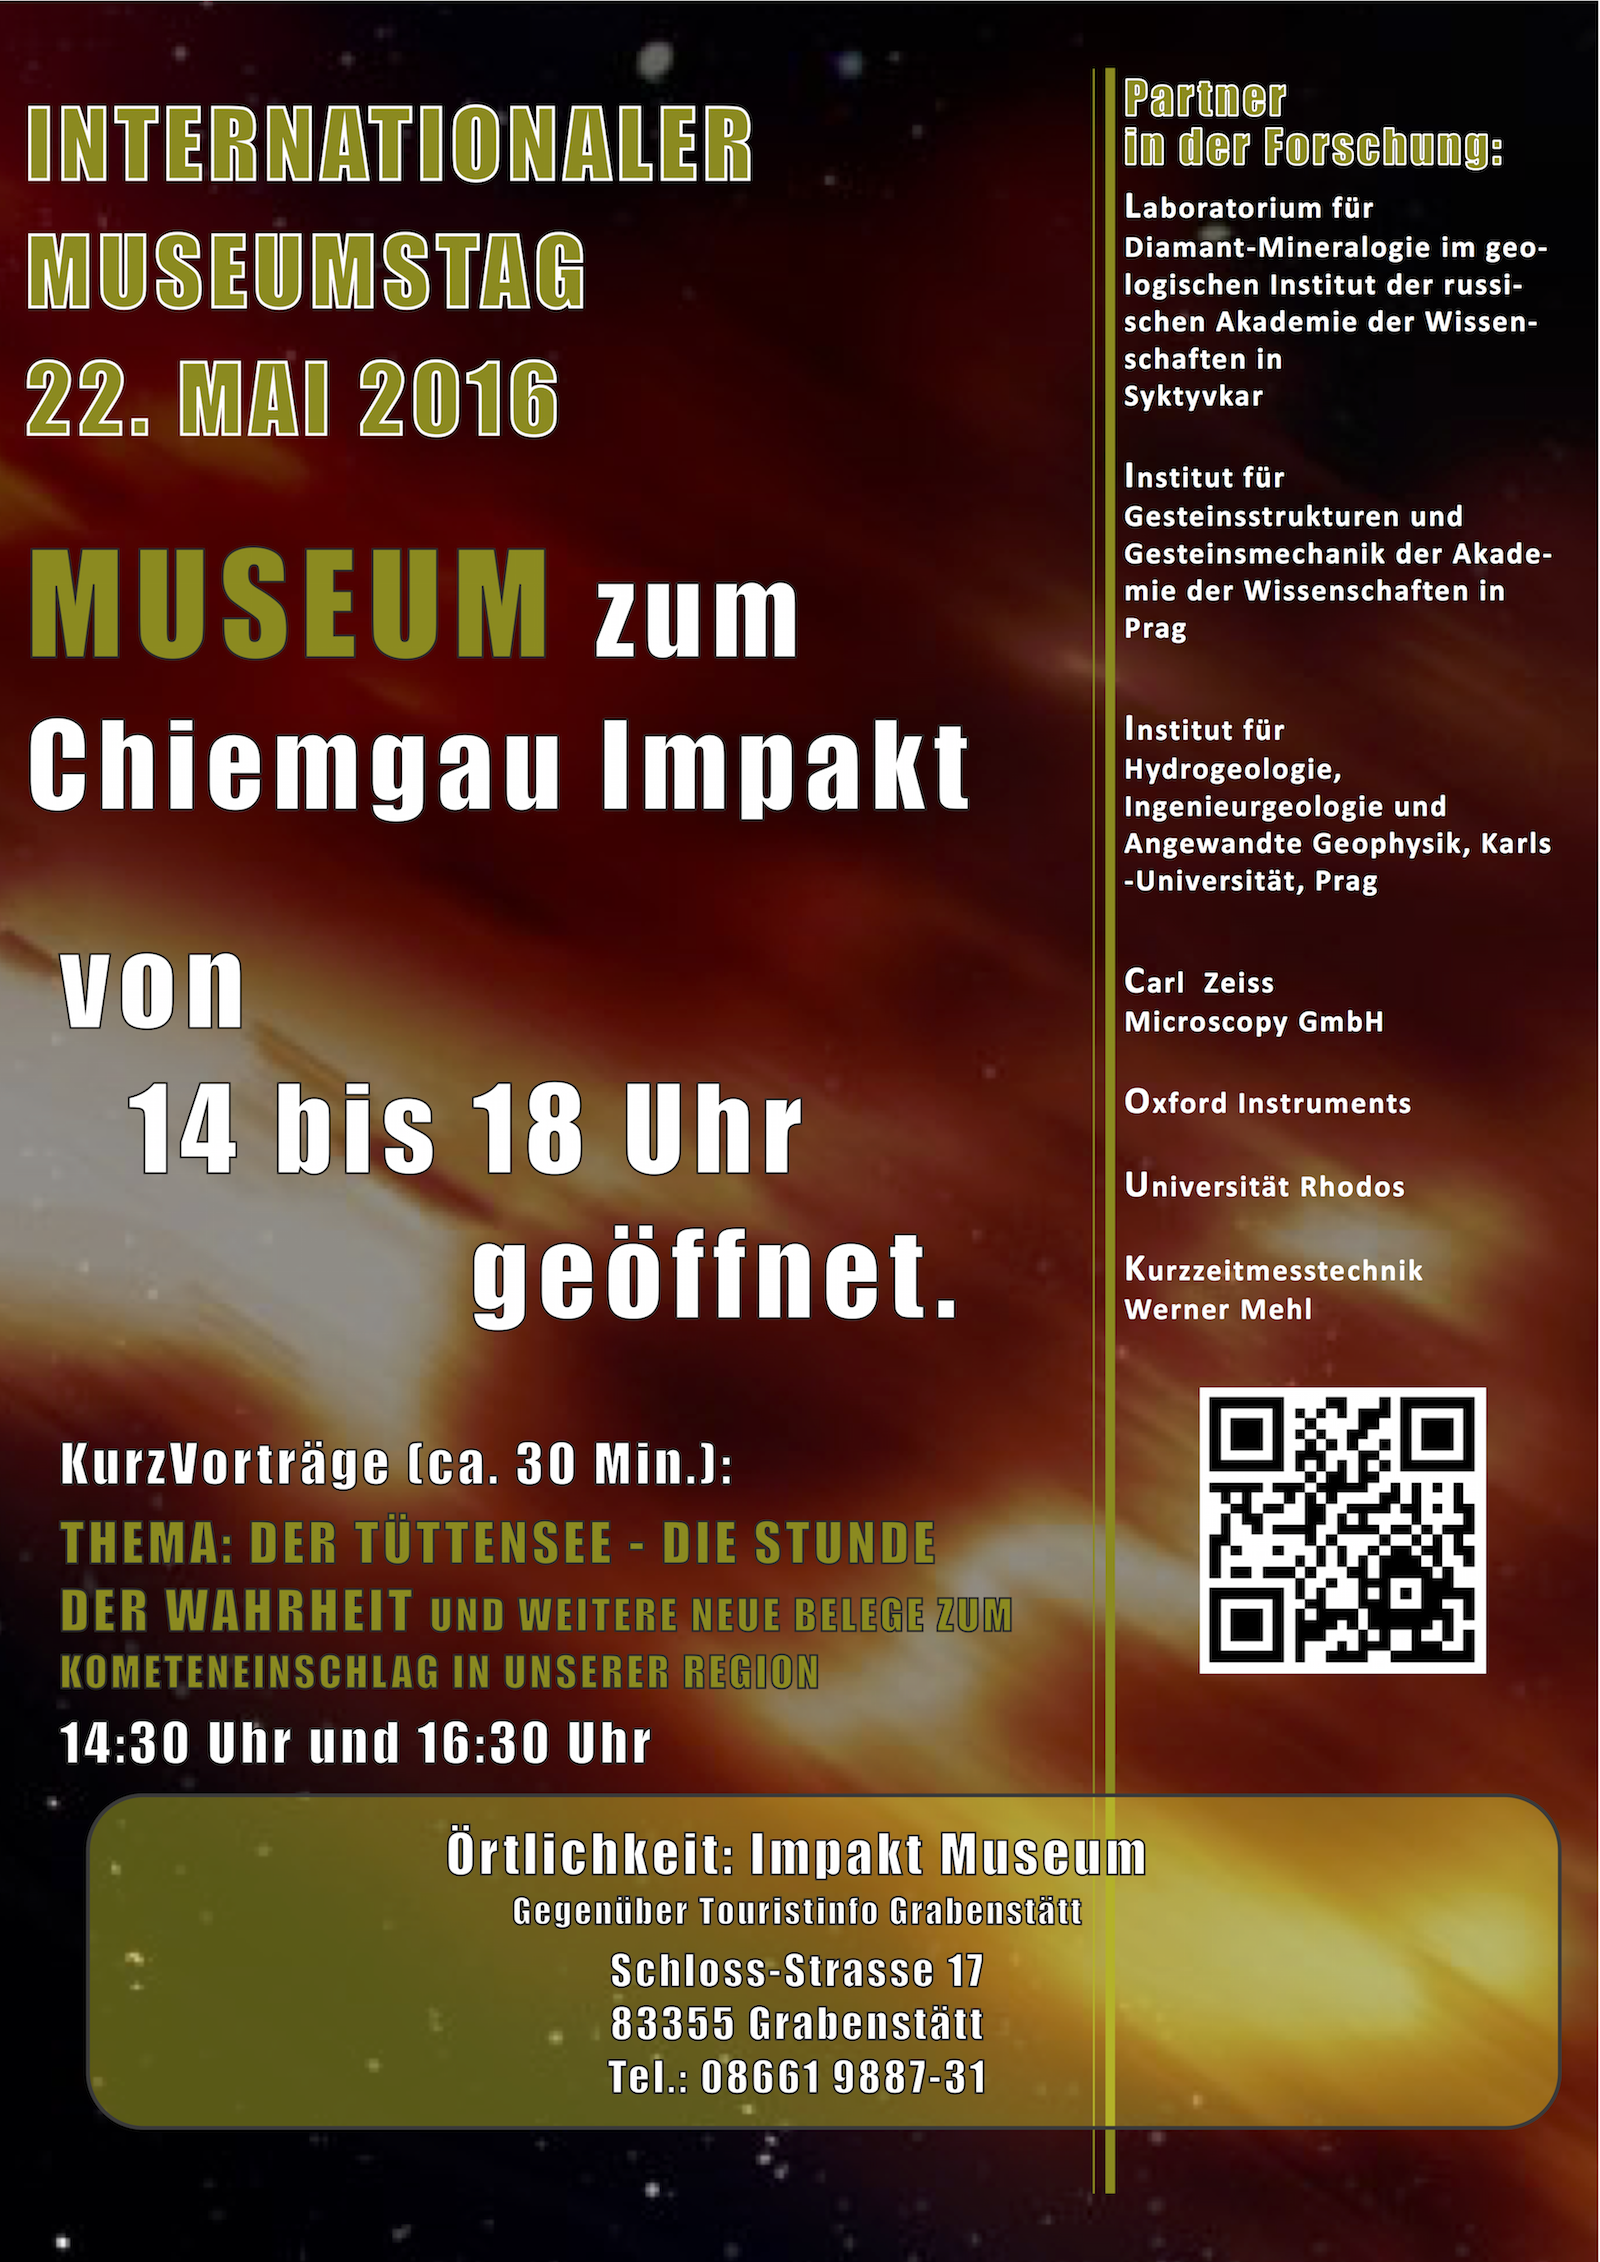 2016 - Poster Museumstag Chiemgau Impakt